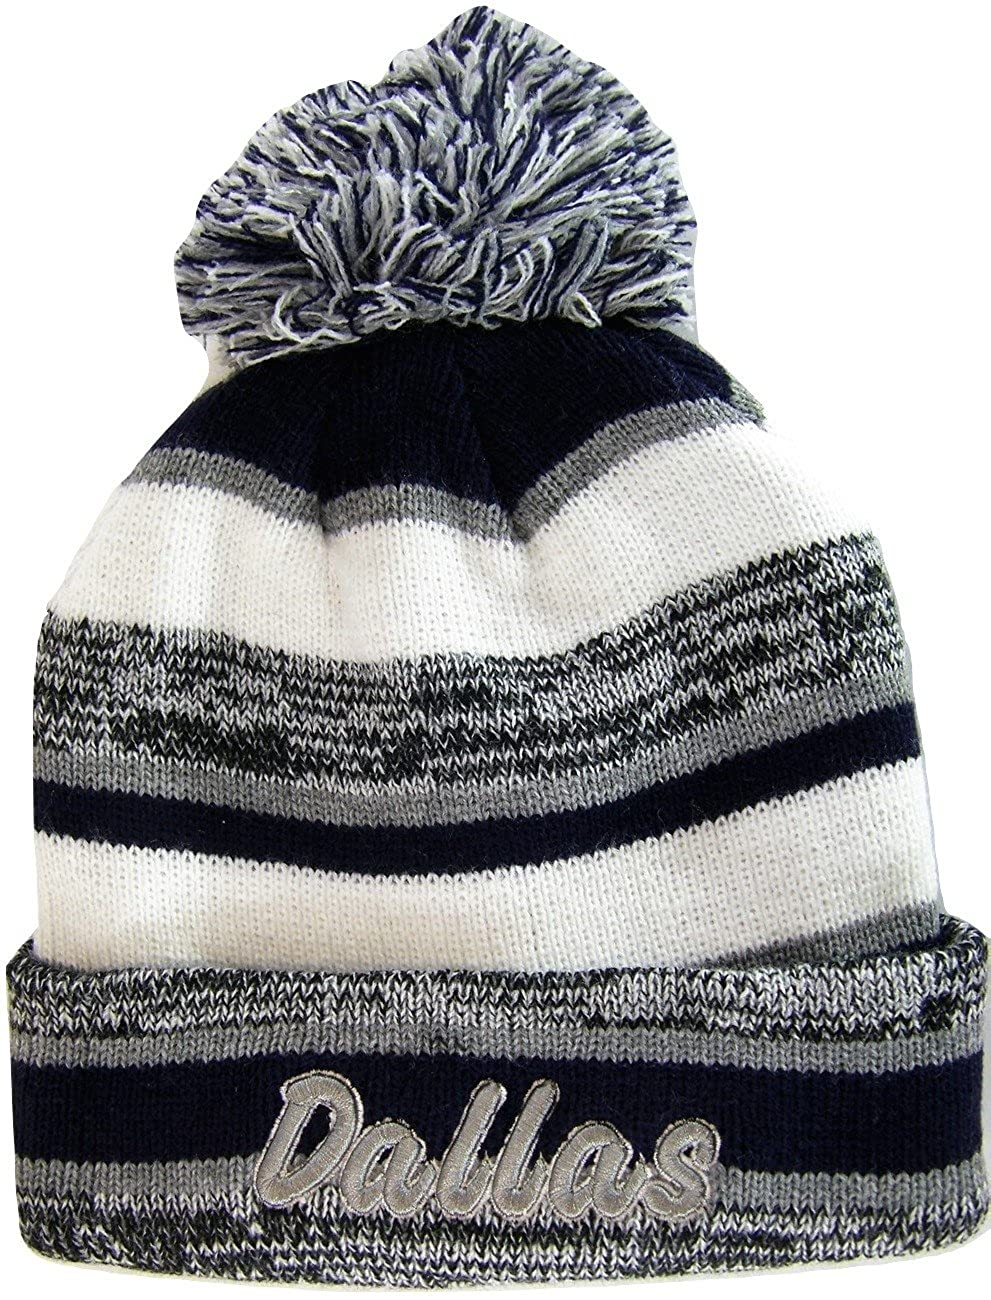 eebb34b3e3b Dallas Adult Size Tri-Color Winter Knit Pom Beanie Hats (Gray Navy Script)  at Amazon Men s Clothing store